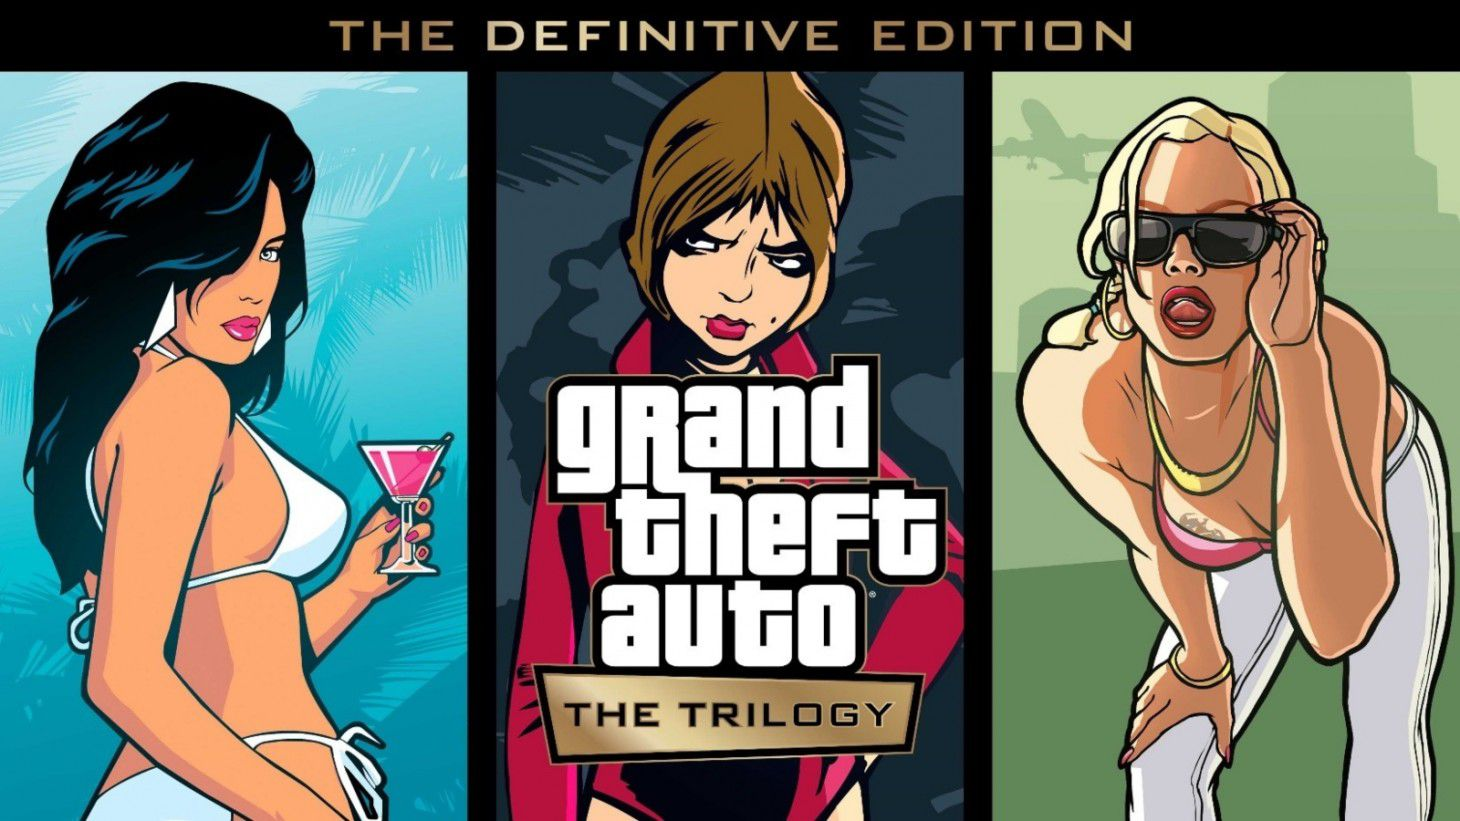 GTA Trilogy: The Definitive Edition